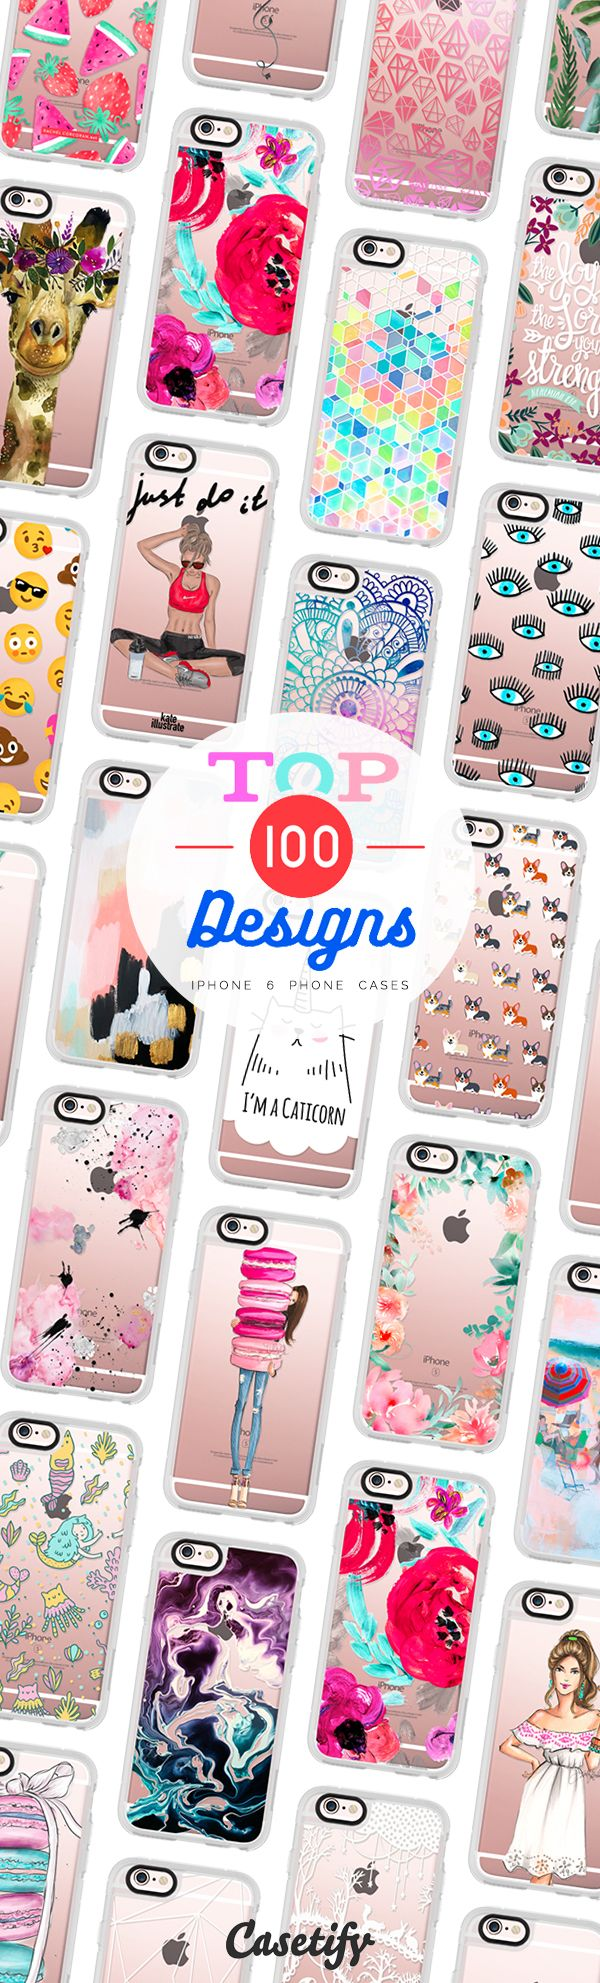 Top 100 iPhone 6 protective phone case designs | Click through to see more animal food marble floral iPhone phone case designs >>> https://www.casetify.com/collections/top_100_designs | @casetify